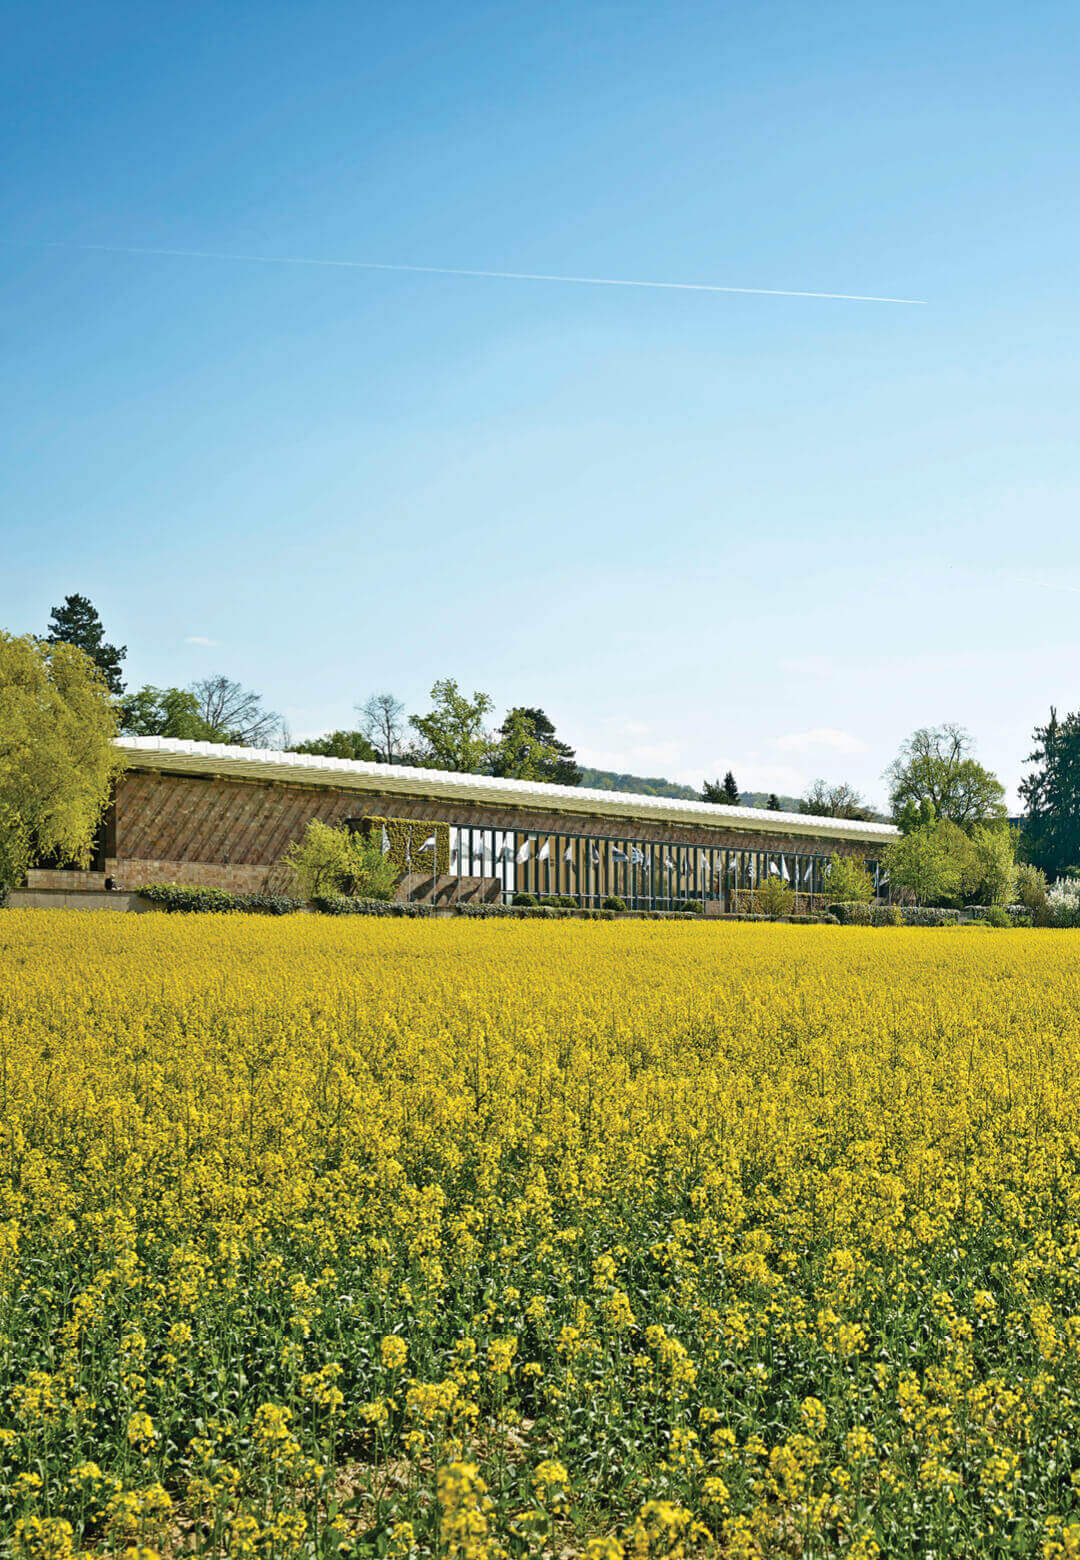 Architect Renzo Piano purposefully designed the museum building to be unobtrusive and blend with the surrounding natural landscape   Fondation Beyeler   Renzo Piano   STIRworld